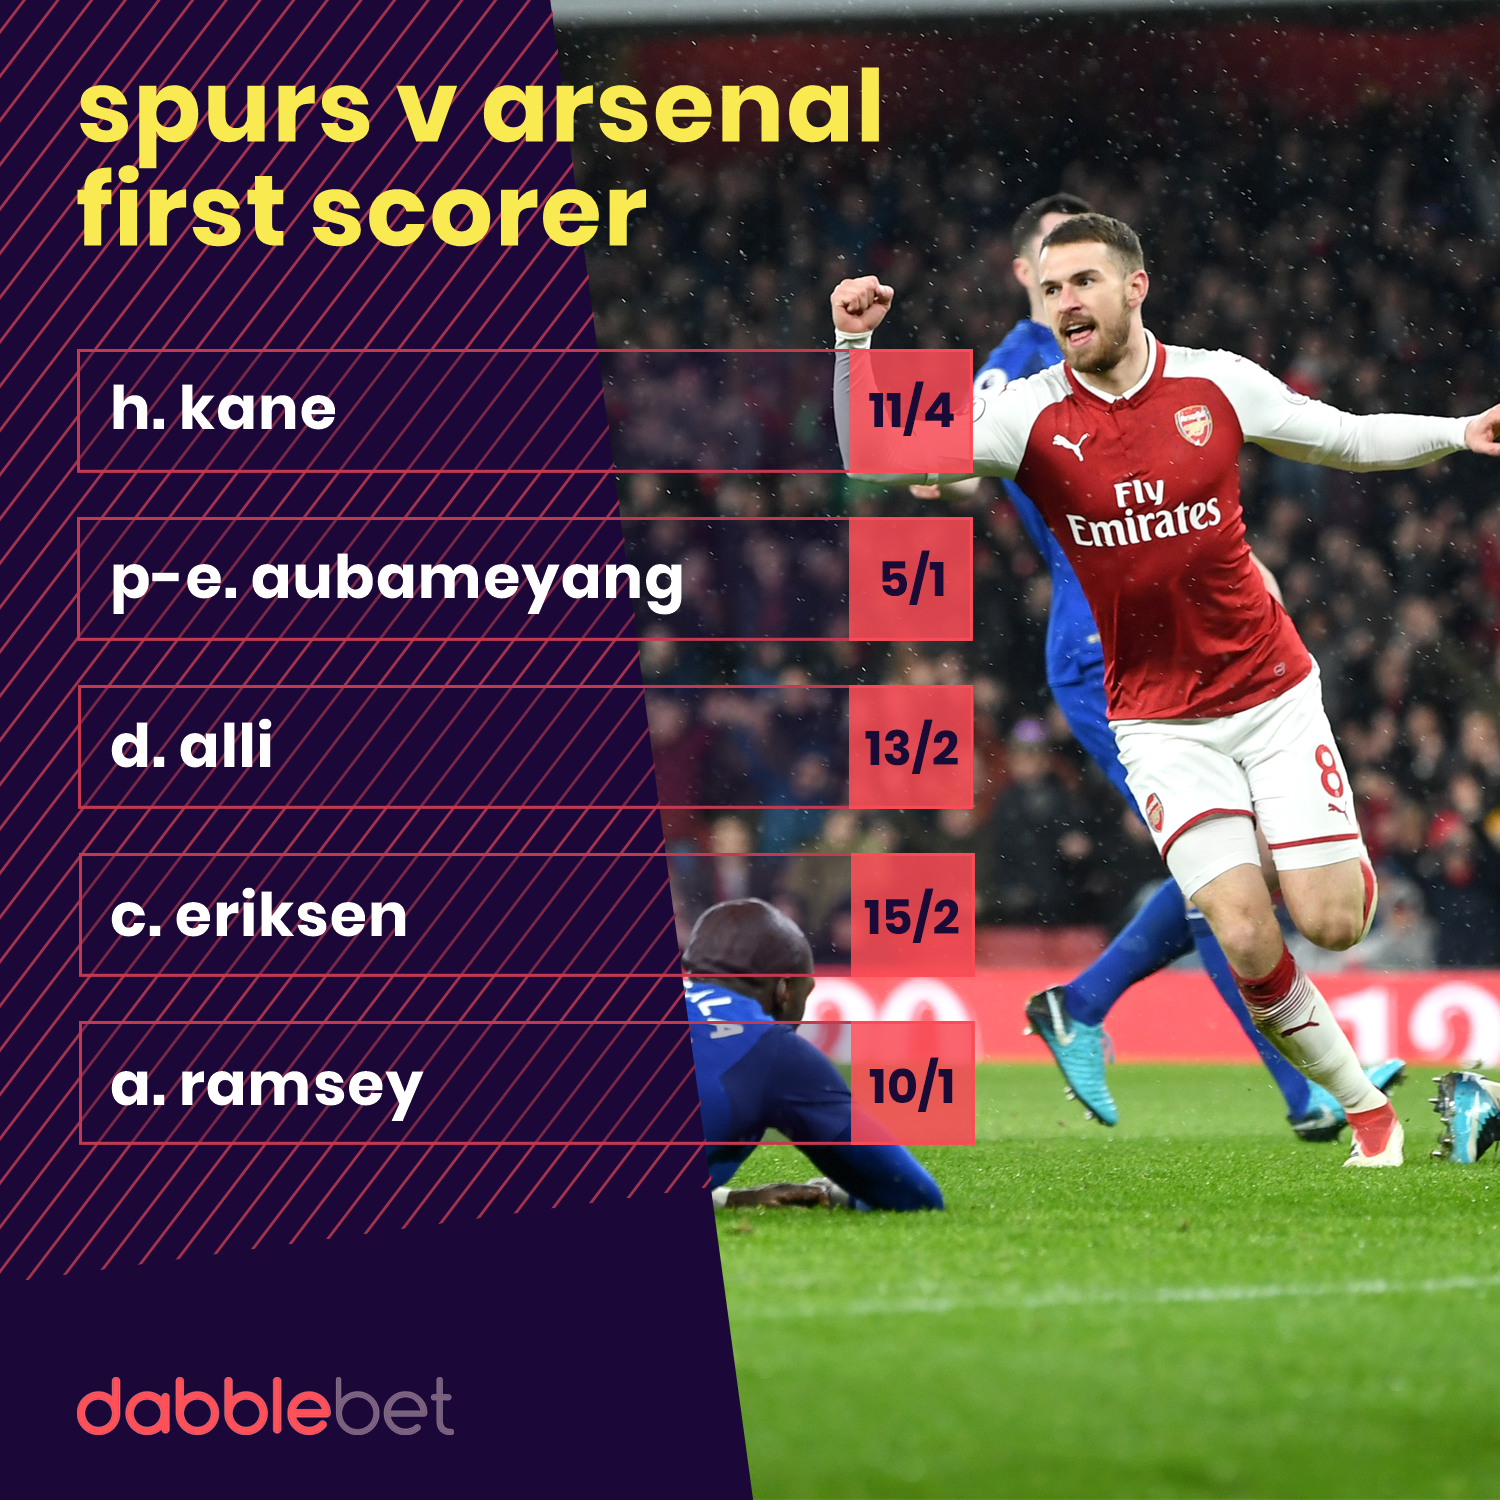 Spurs Arsenal goalscorer graphic